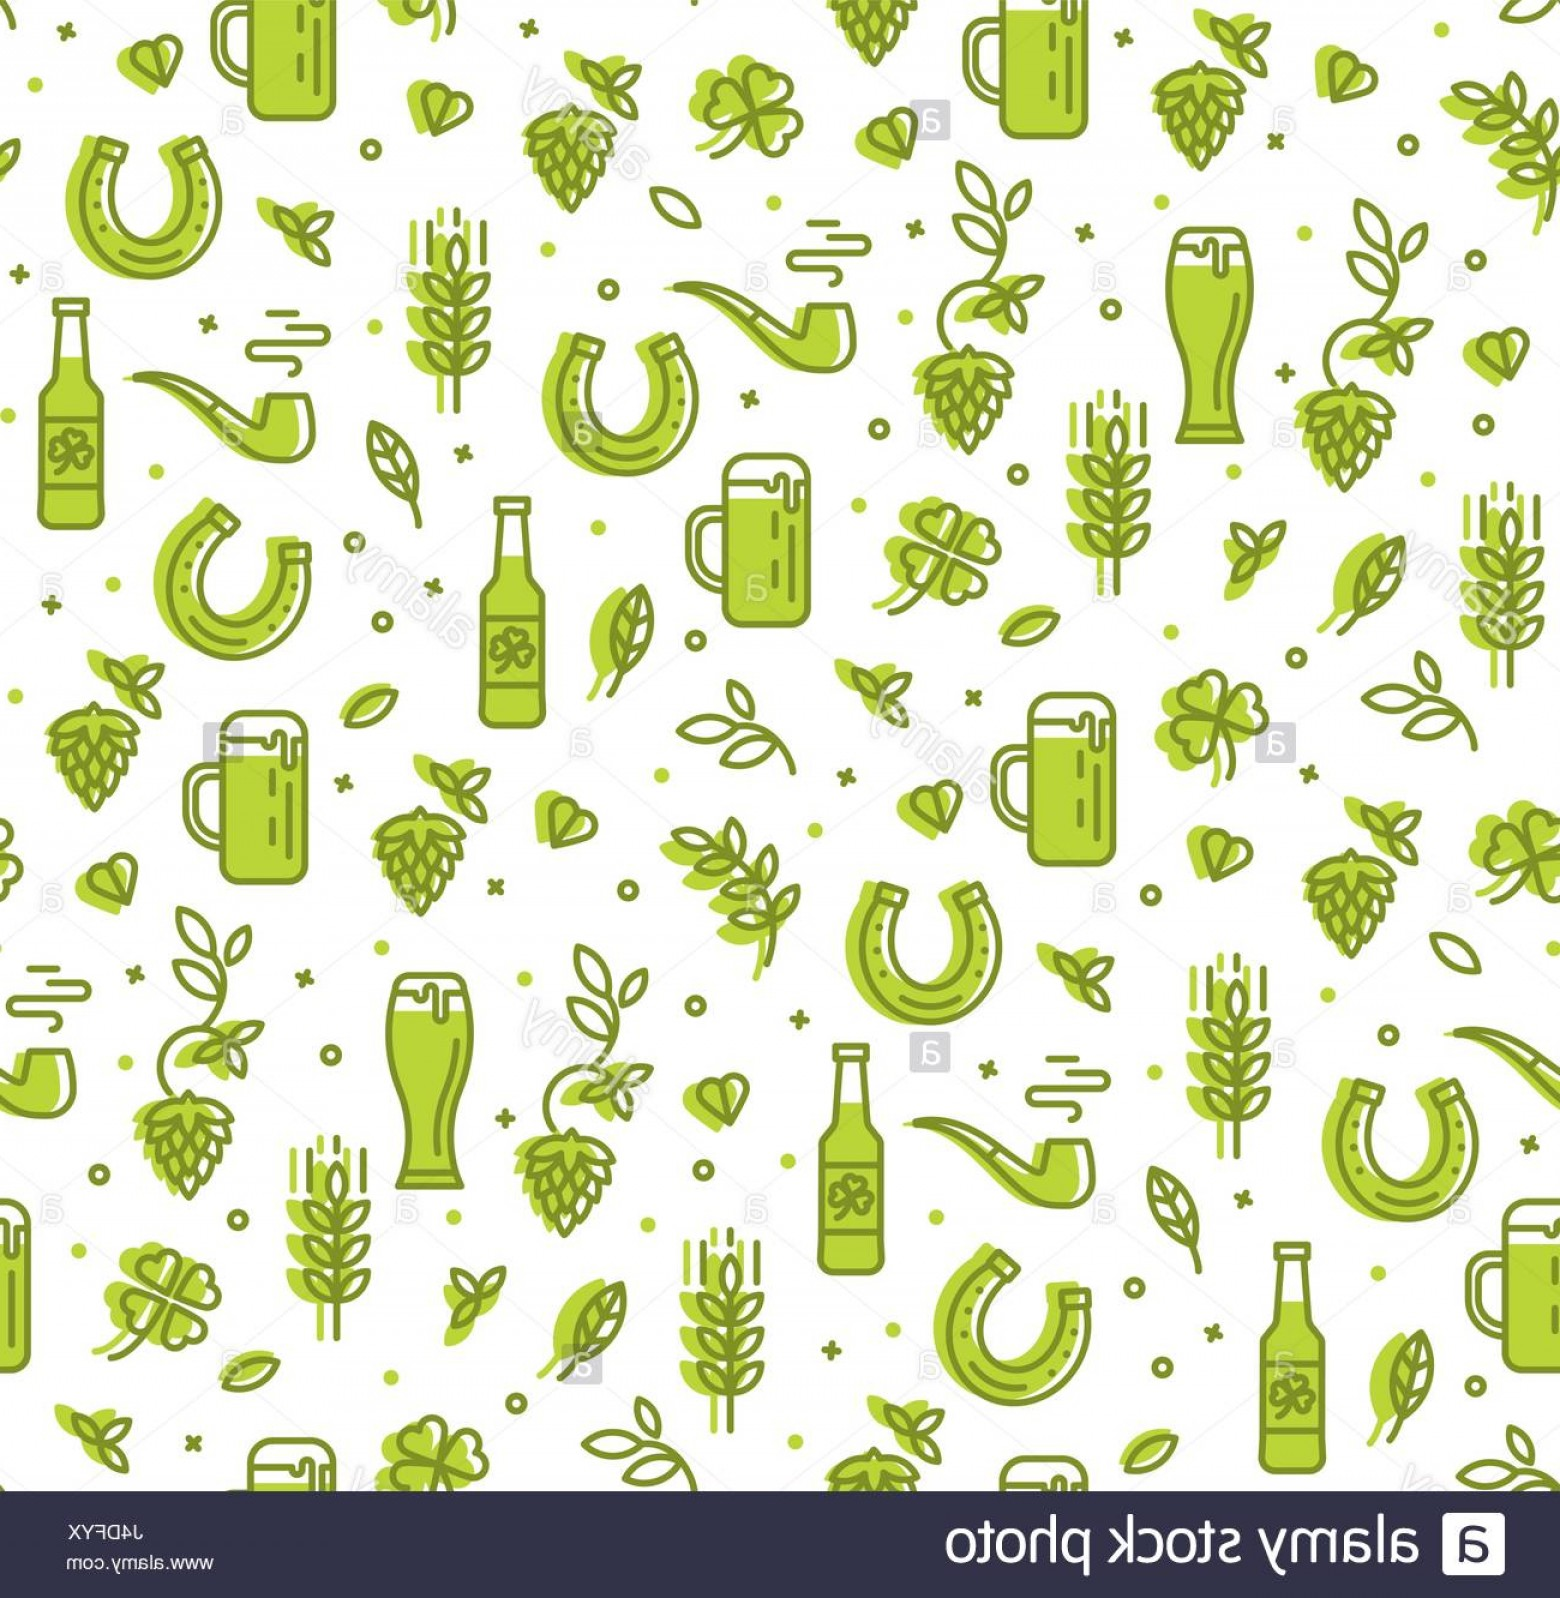 Beer Hops Vector: Stock Photo Simple Seamless Pattern With Beer Hops Horseshoe Pattern Pub Restaurant